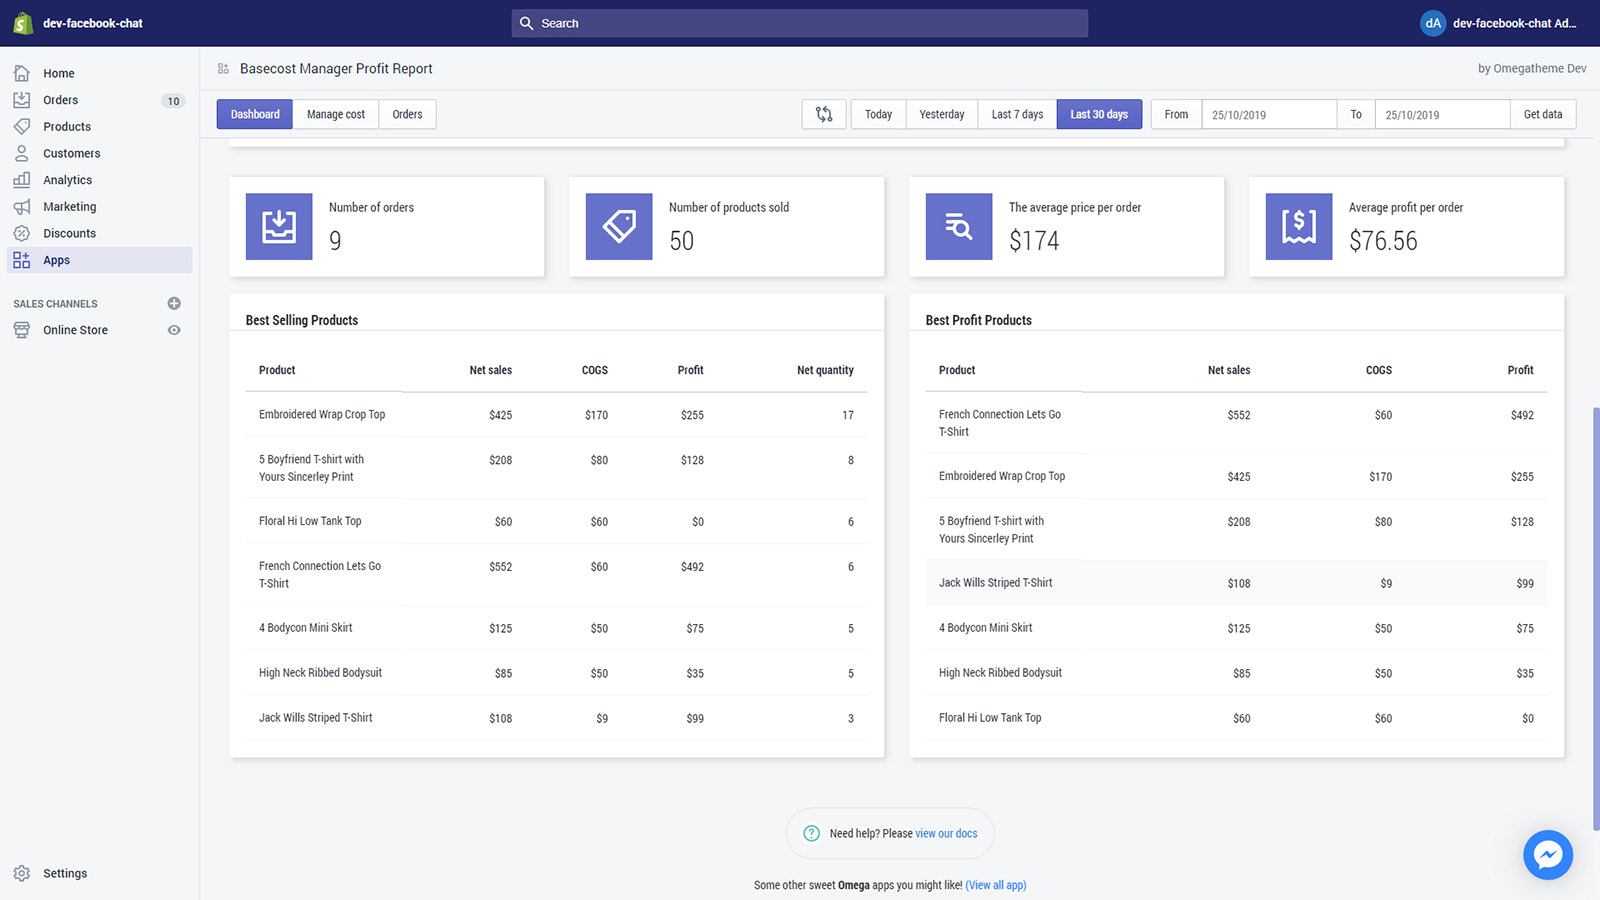 Basecost manager profit report